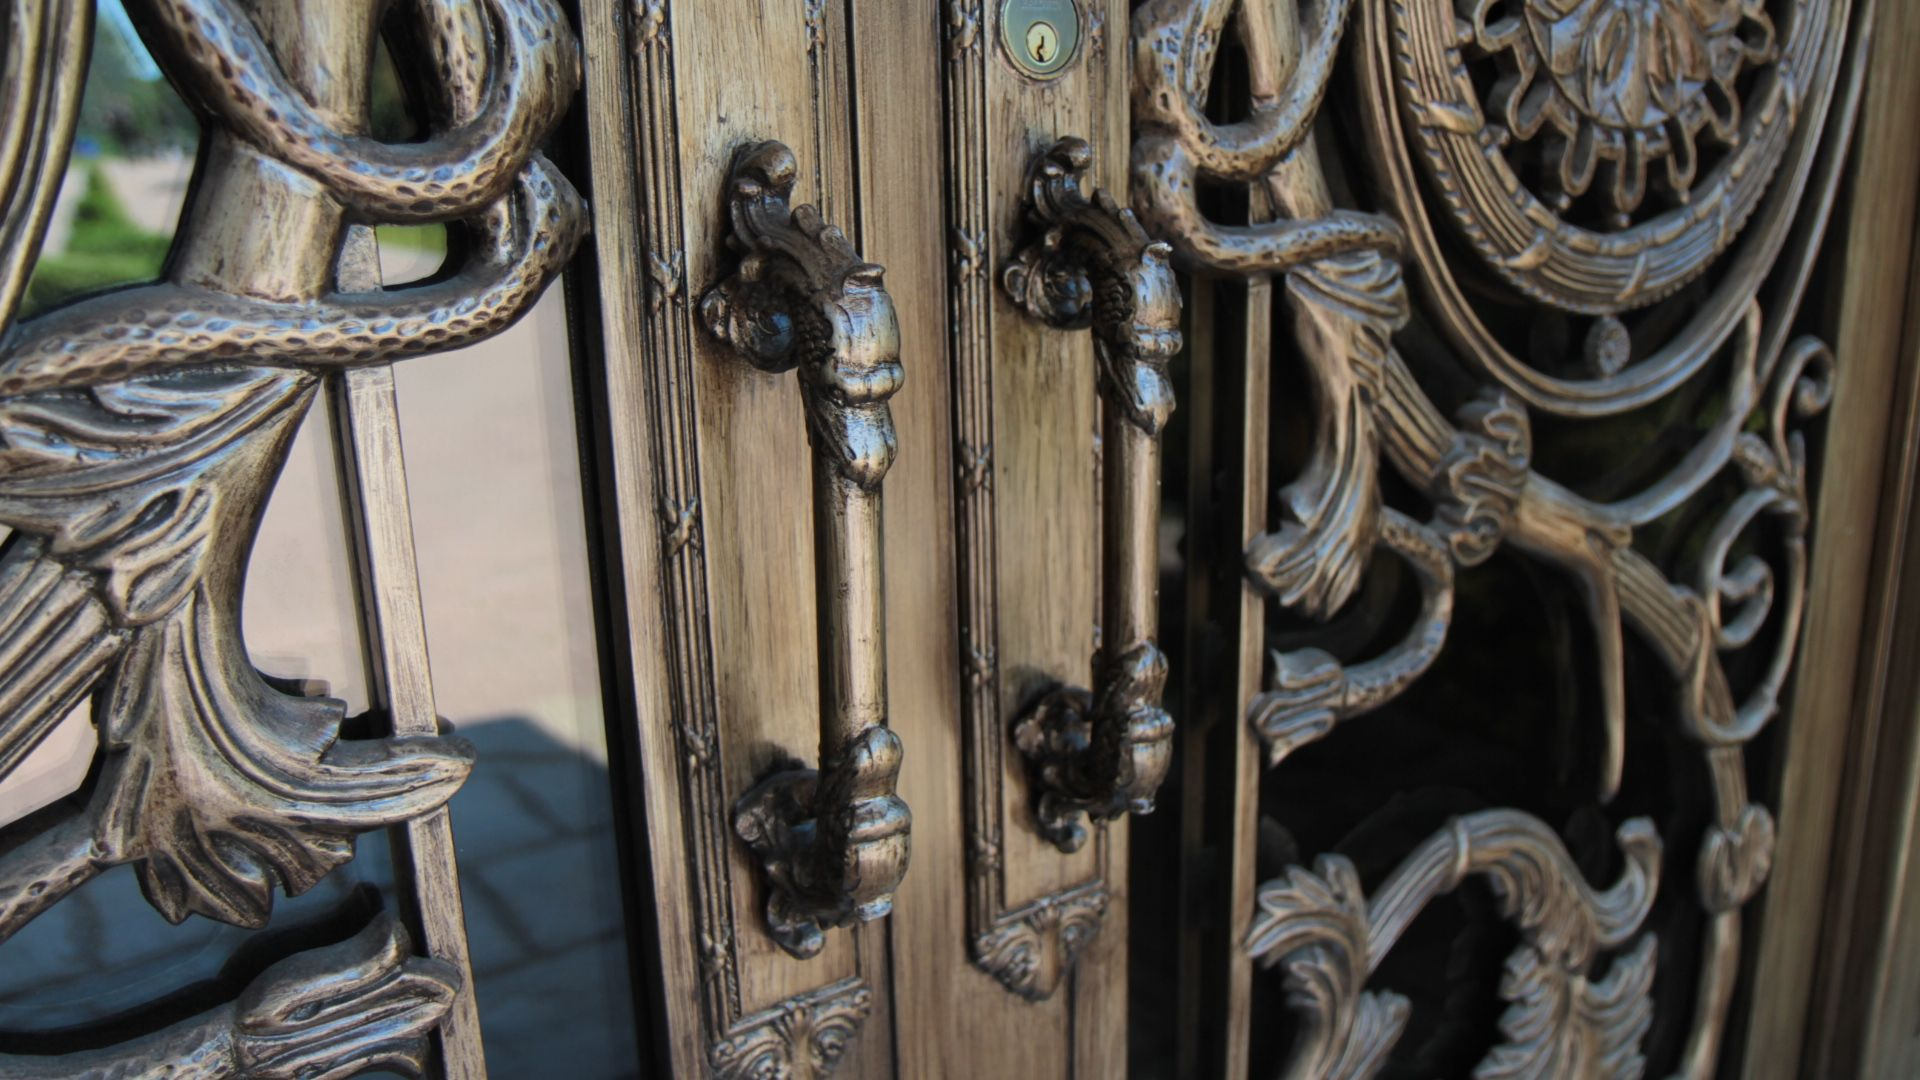 The art of door making influenced by classical antiquity and modern